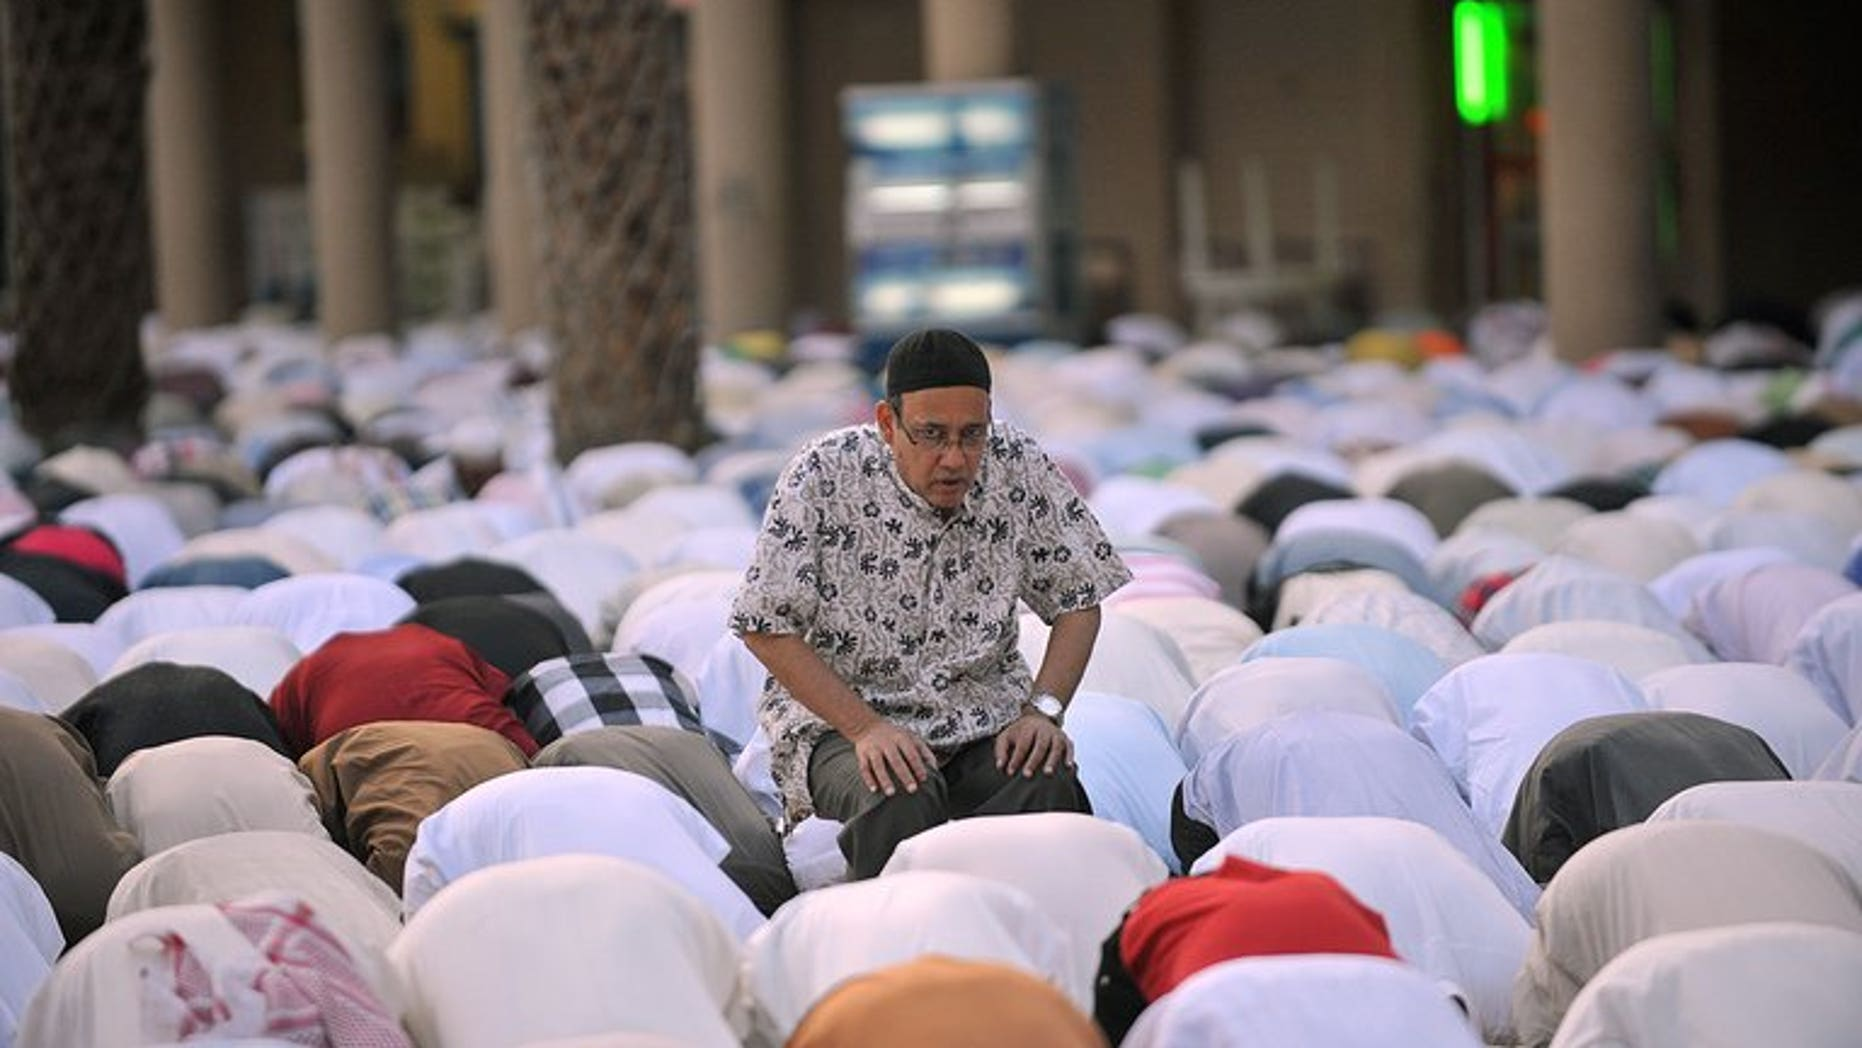 Men in Saudi Arabia pray on the first day of Eid al-Fitr in the great mosque in the old city of Riyadh, on August 19, 2012 to mark the end of the holy fasting month of Ramadan. The holiday will begin in Saudi Arabia on Wednesday, the royal cabinet announced in a statement Monday, citing the kingdom's religious authorities.